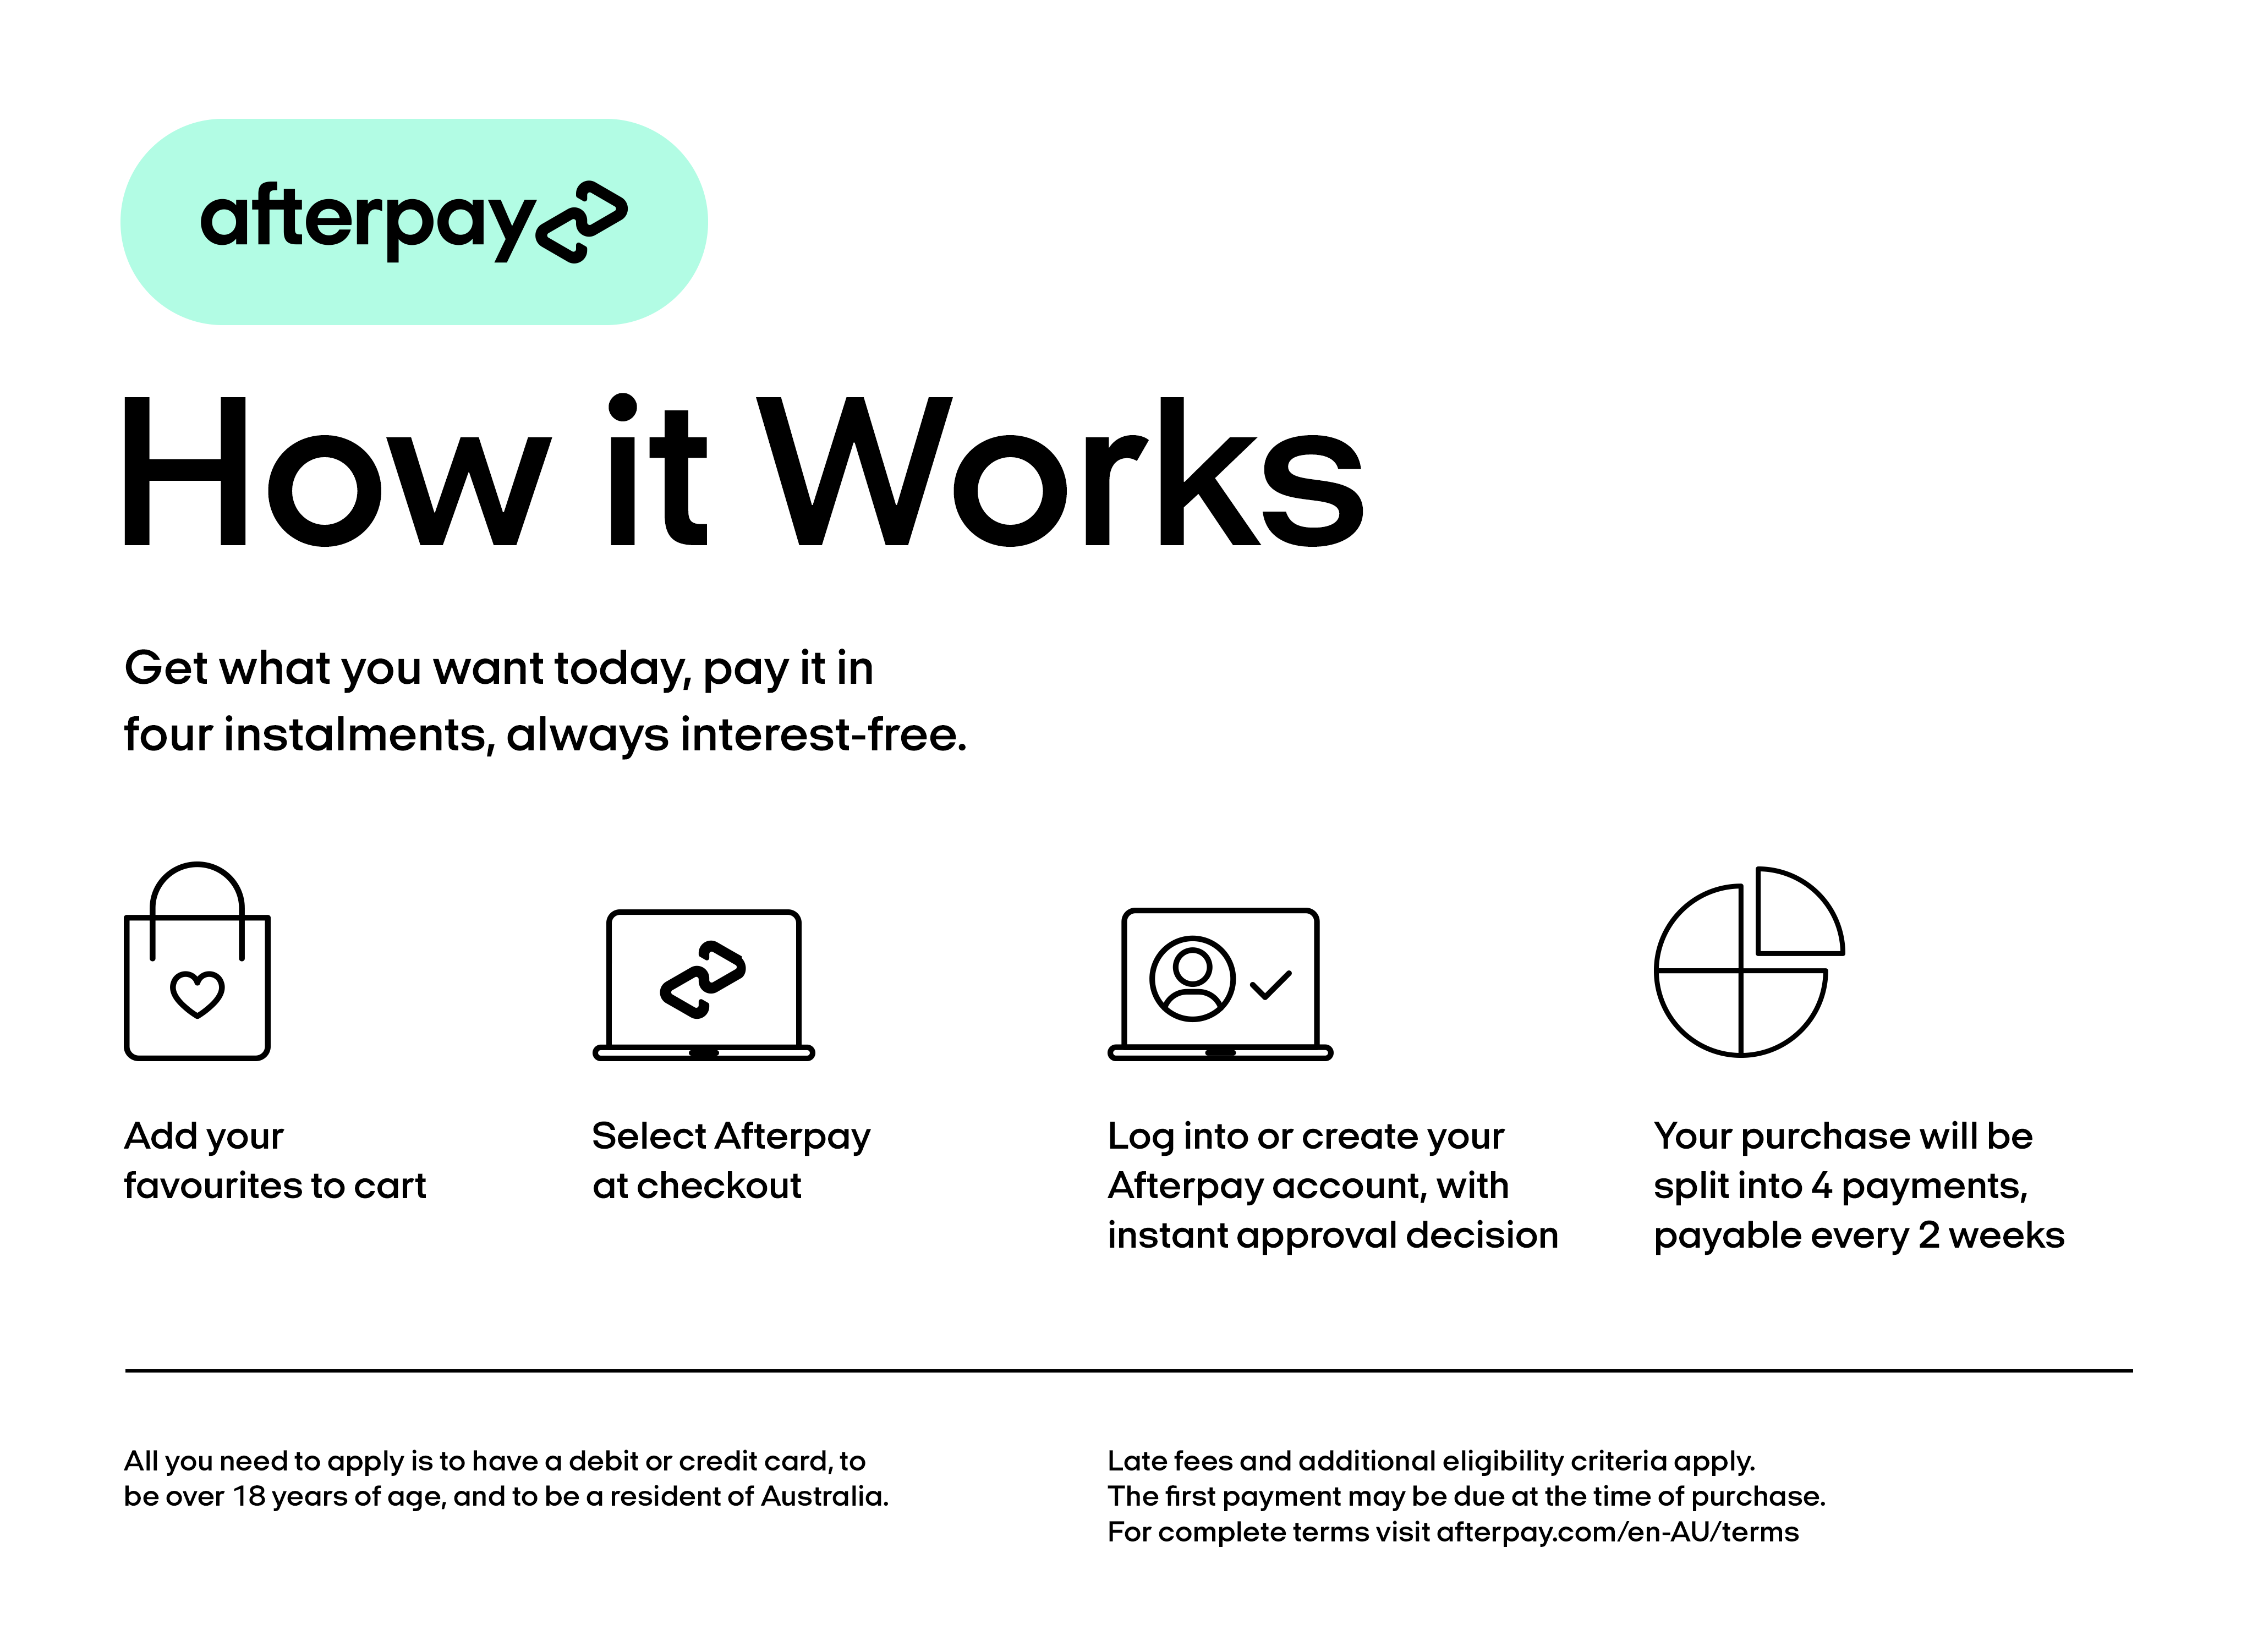 afterpay-au-howitworks-desktop-white-3x.png